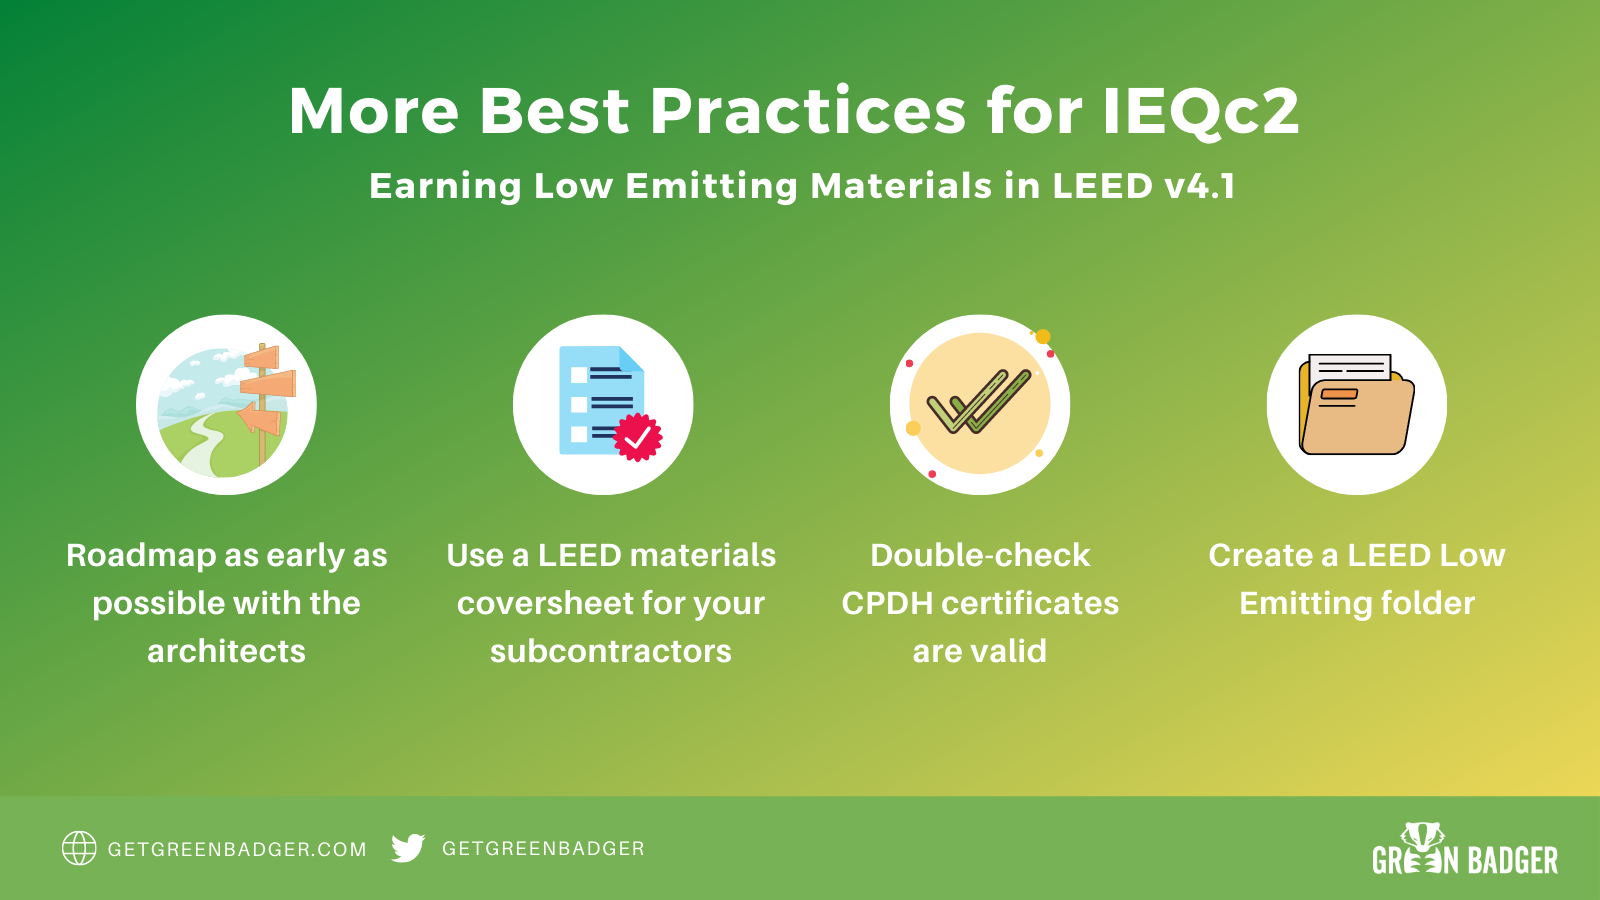 ultimate guide to leed v4.1 best practices for ieqc2